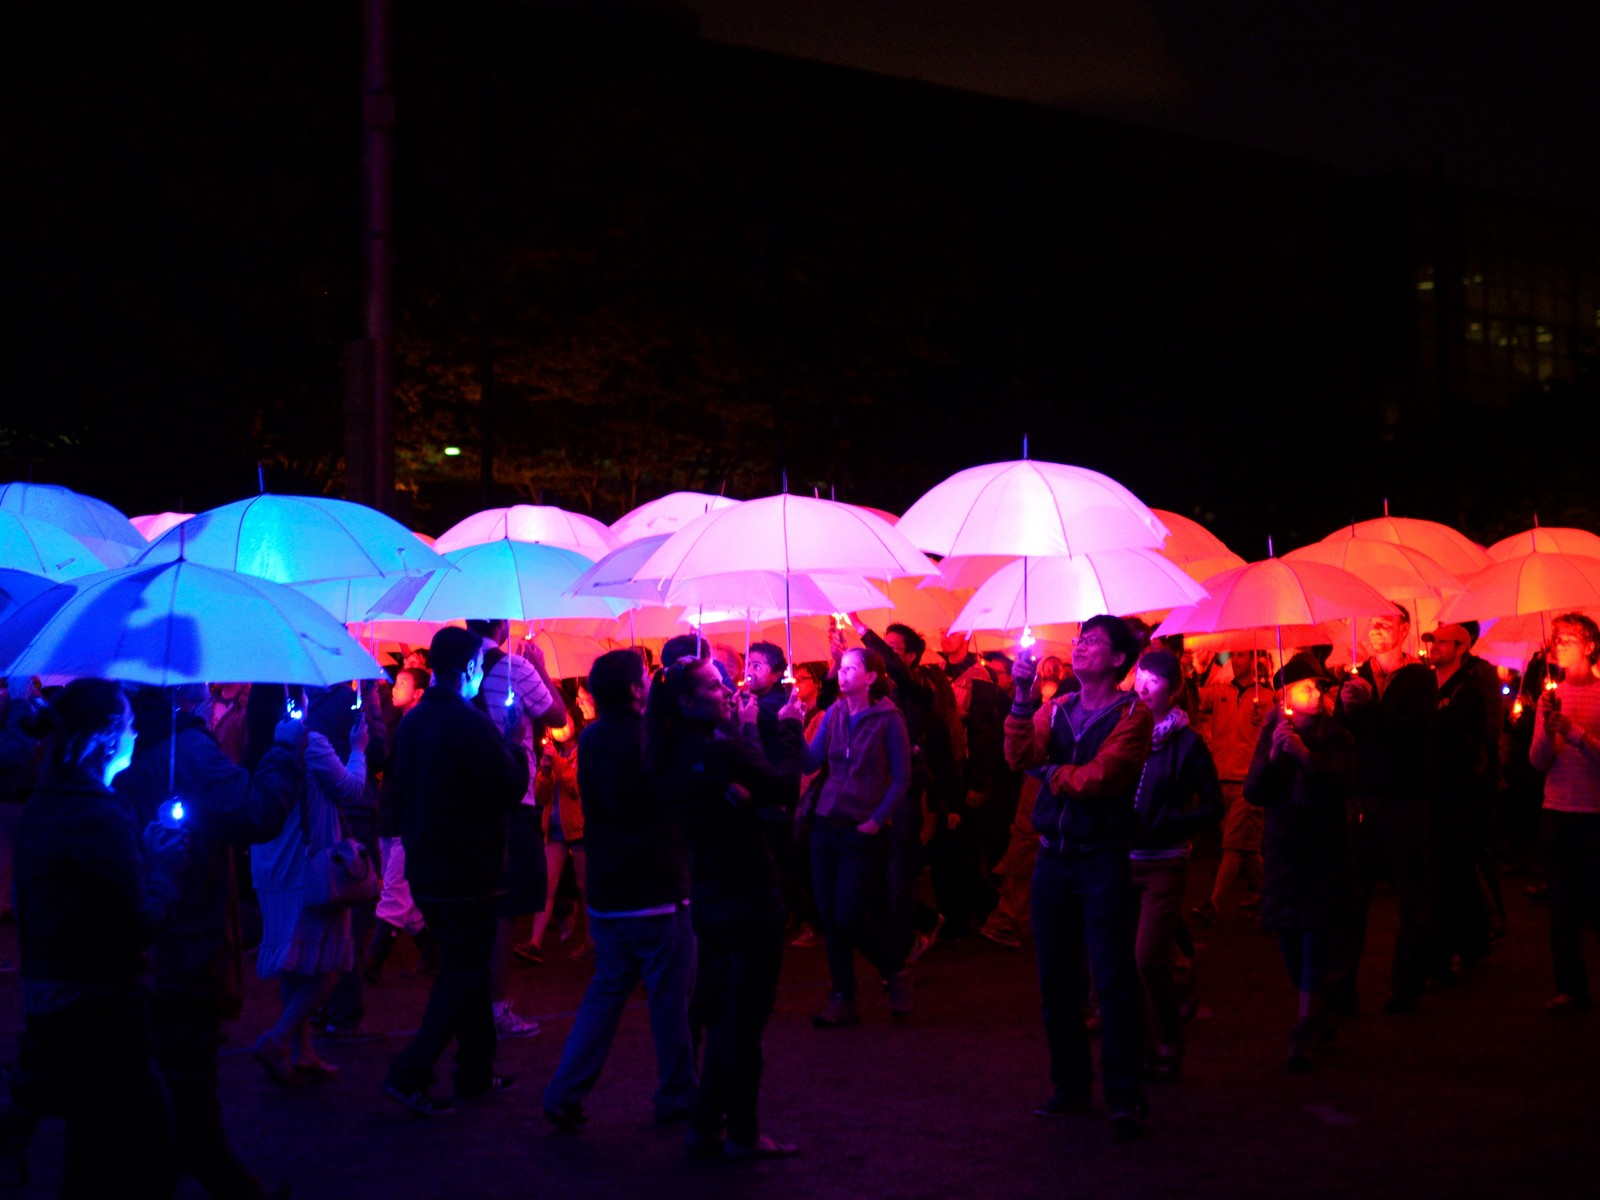 crowd holds led light umbrella at umbrella project mit